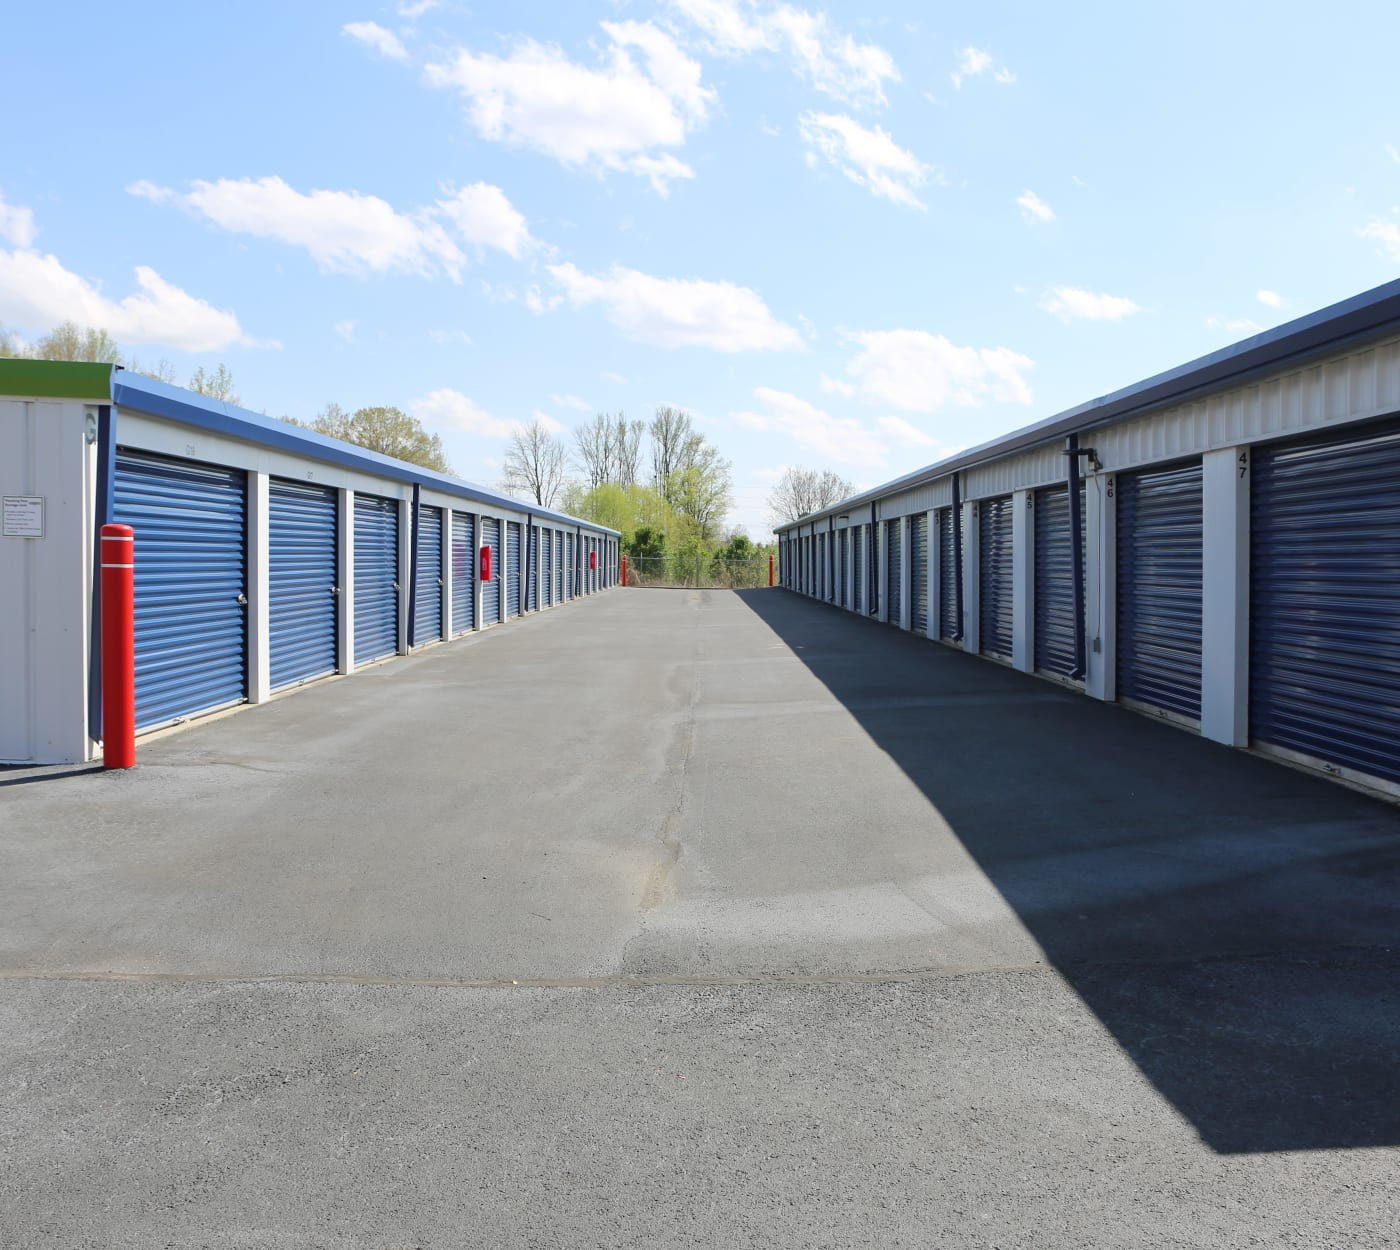 Storage Unit Cost Self Storage Florence Al Storage Unit Sizes And Prices